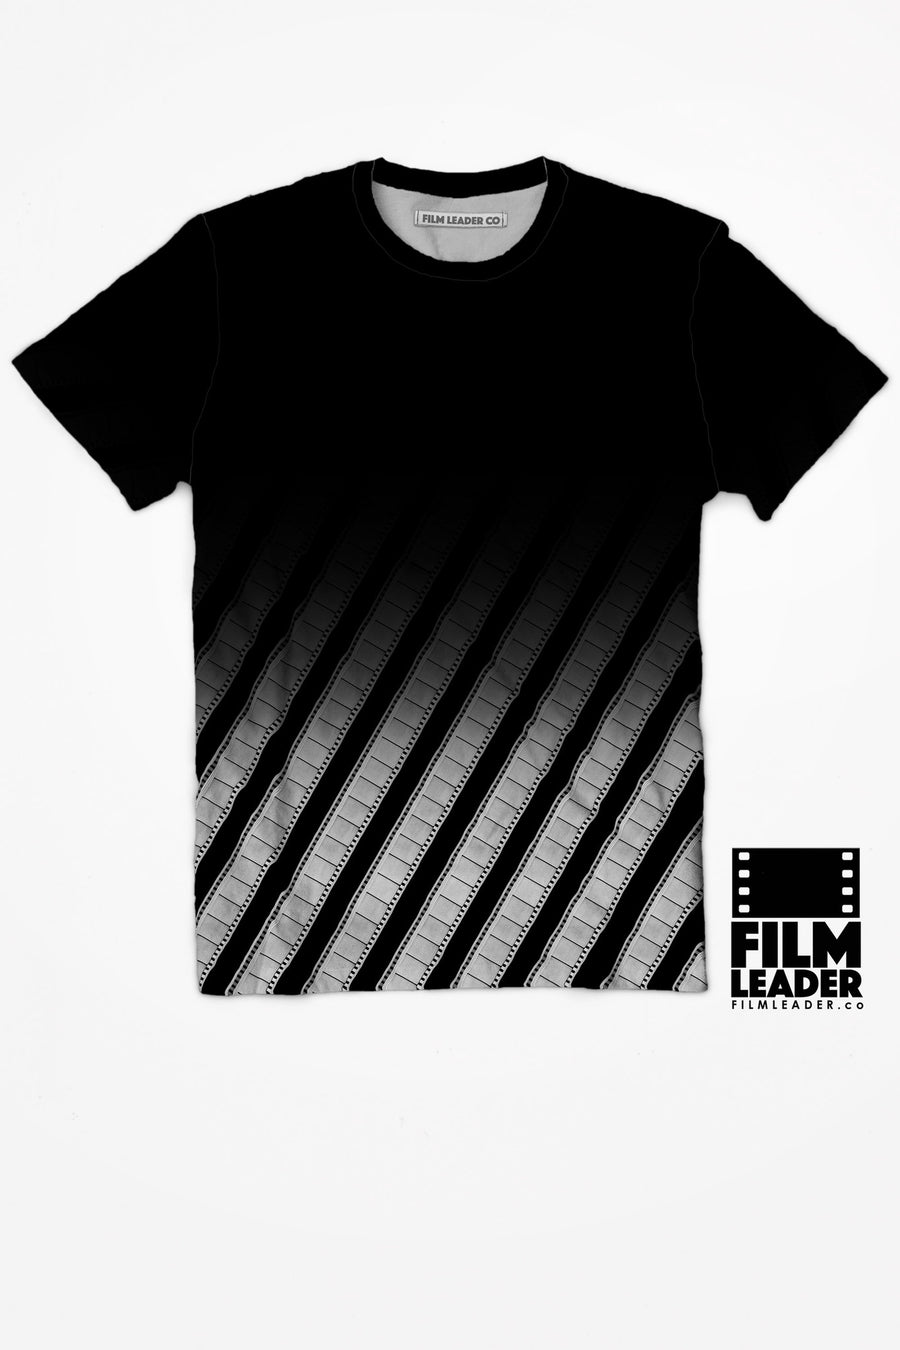 Crew Neck T Shirt with B&W Negative Fade #1